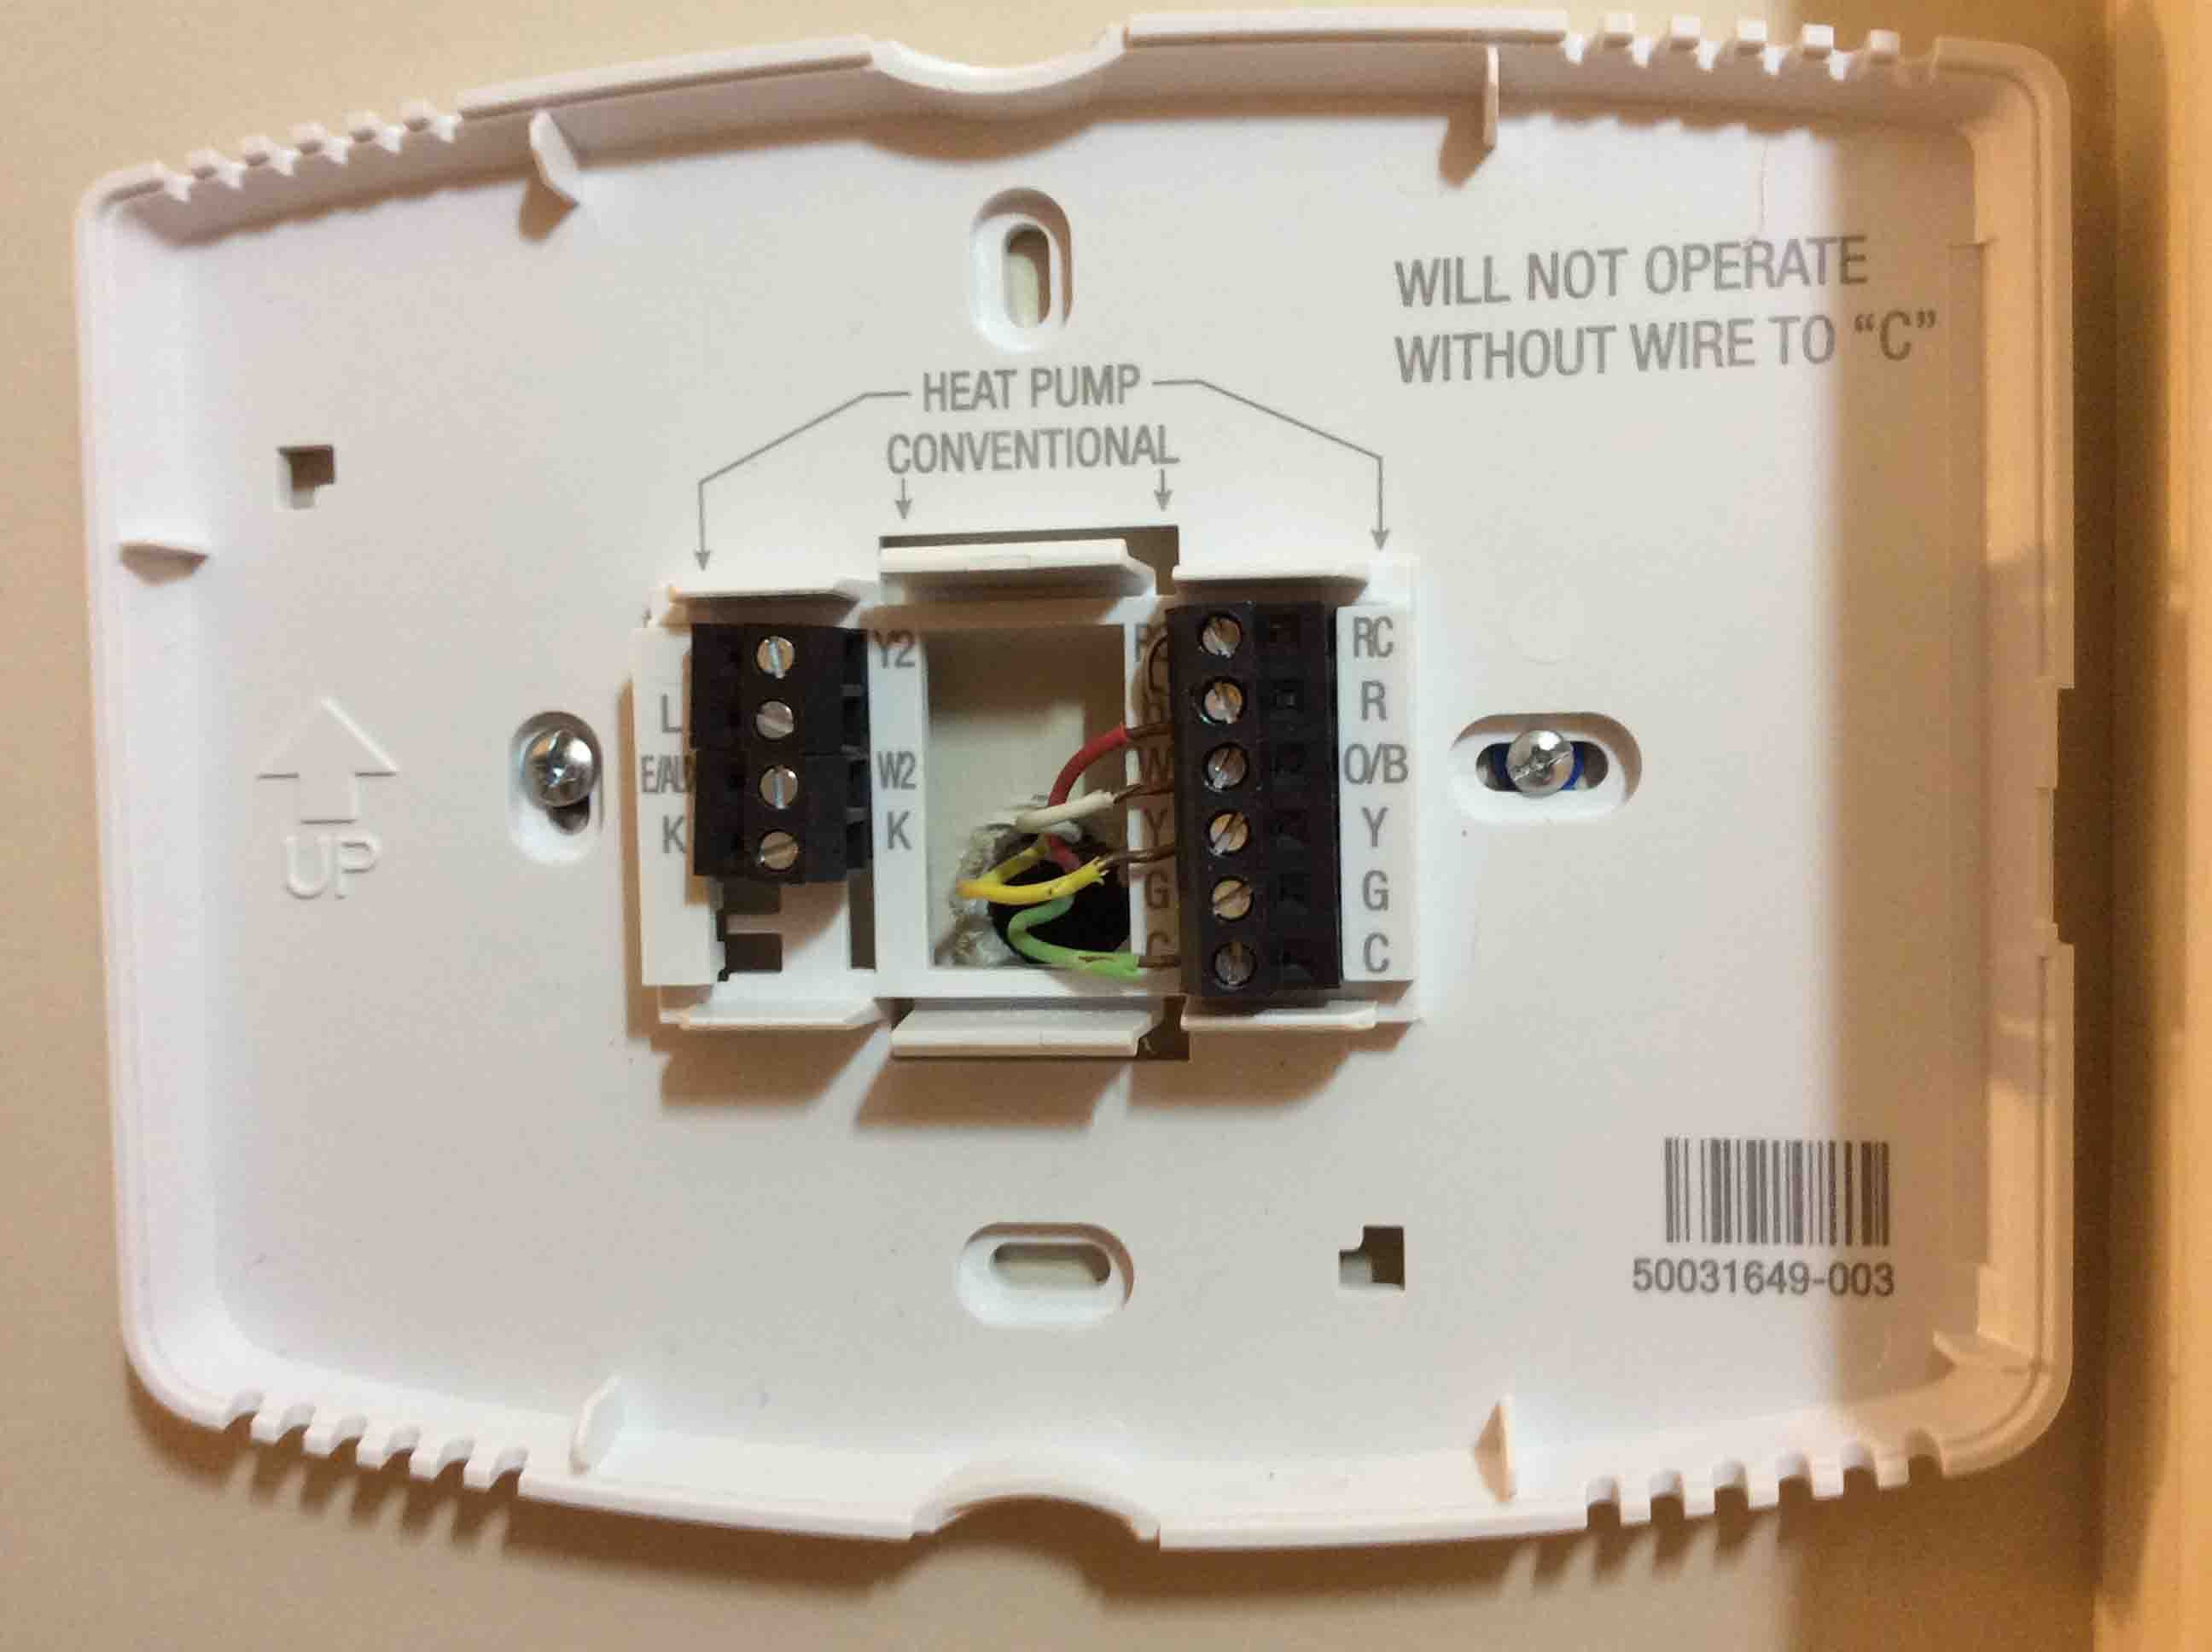 Picture of a Honeywell WiFi thermostat wall plate showing a typical wiring hookup. & Honeywell Thermostat Wiring Diagram 4 Wire | Tom\u0027s Tek Stop